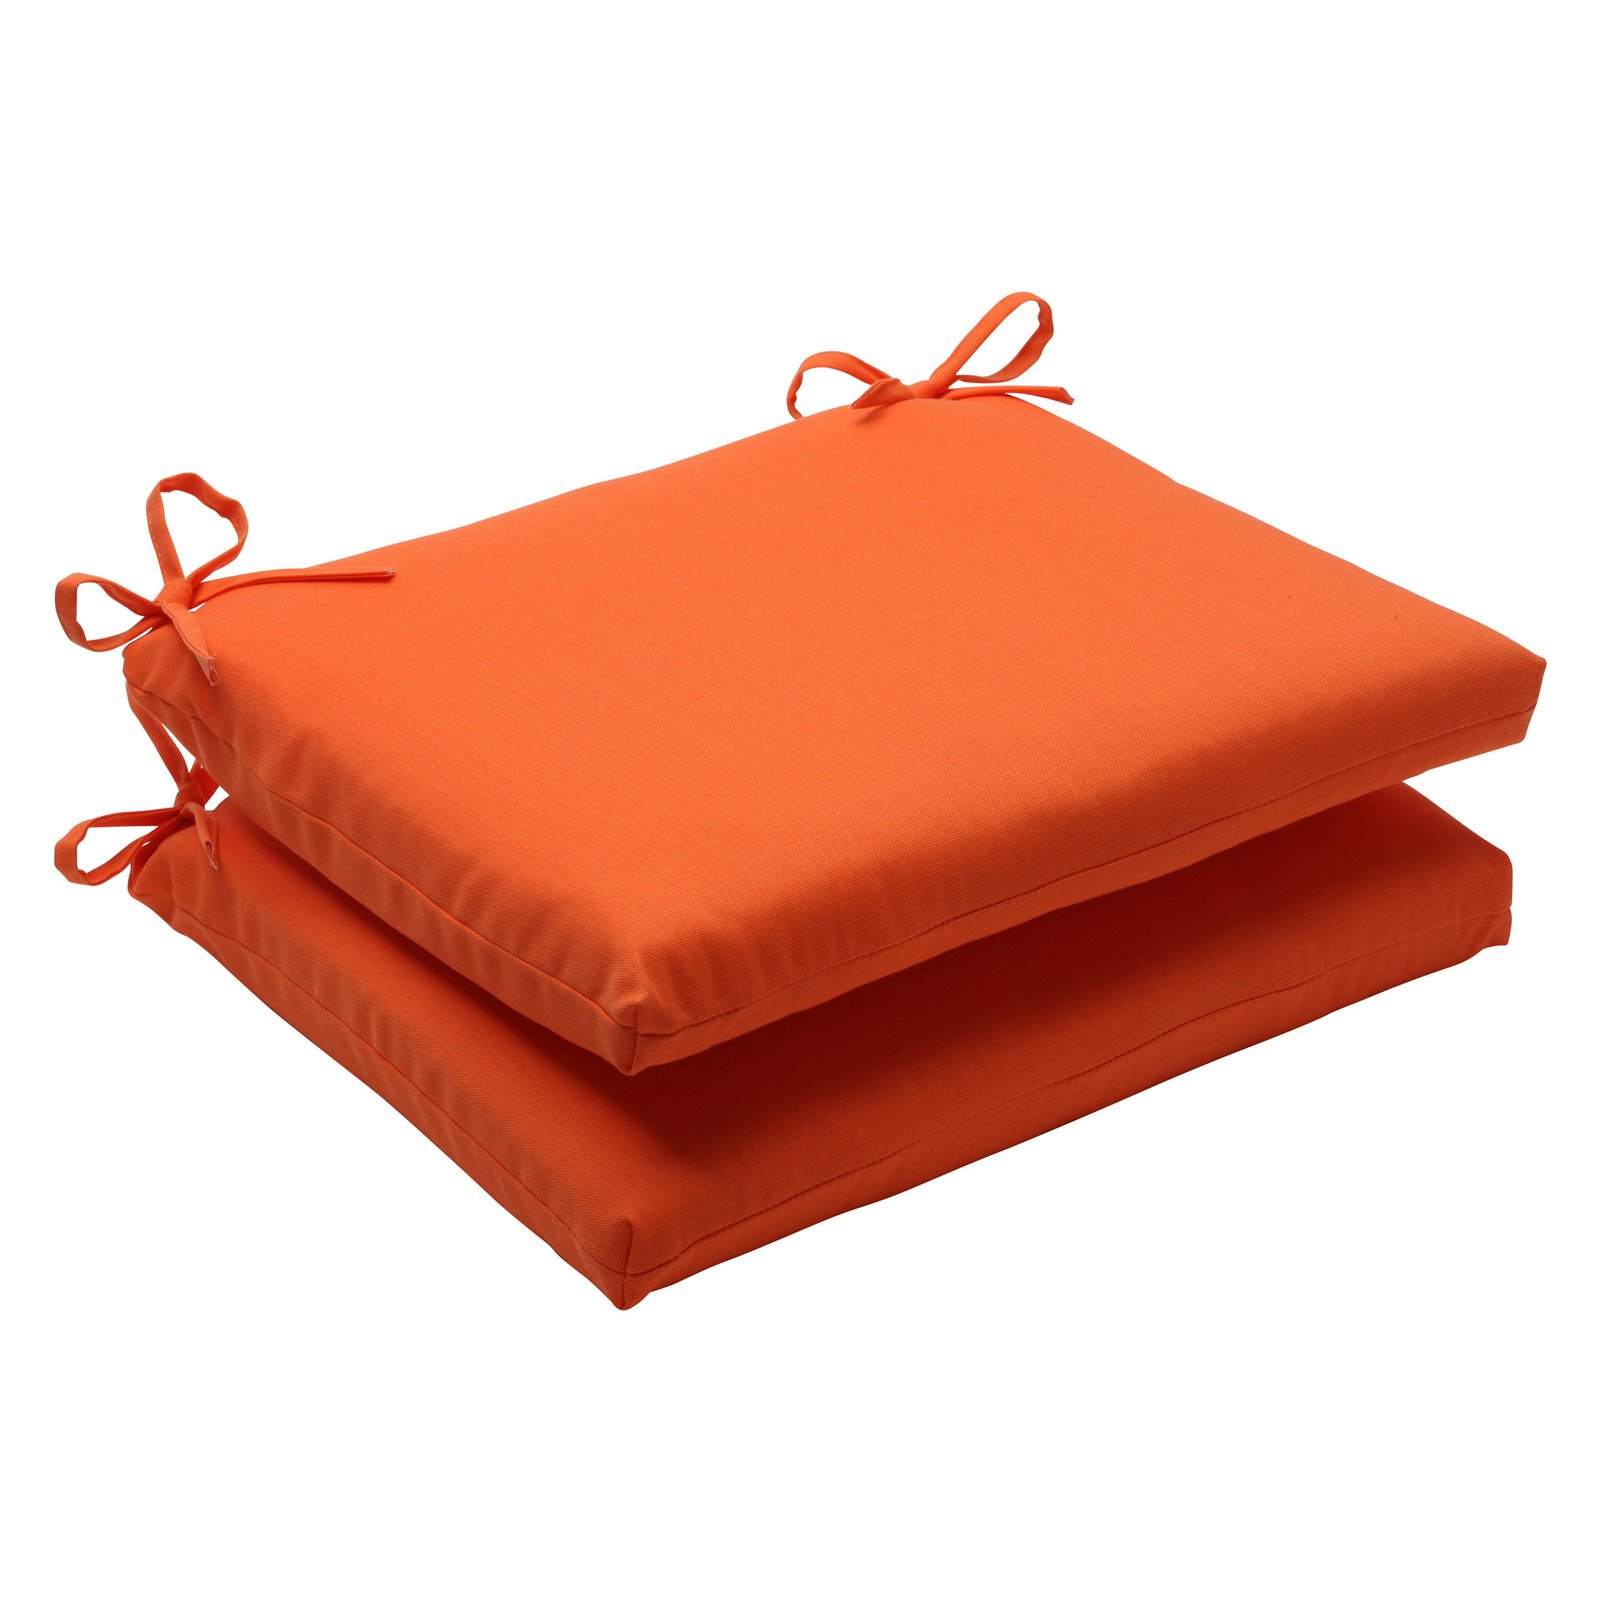 Pillow Perfect Solid Squared Corners Chair Seat Cushion Set of 2 by Pillow Perfect